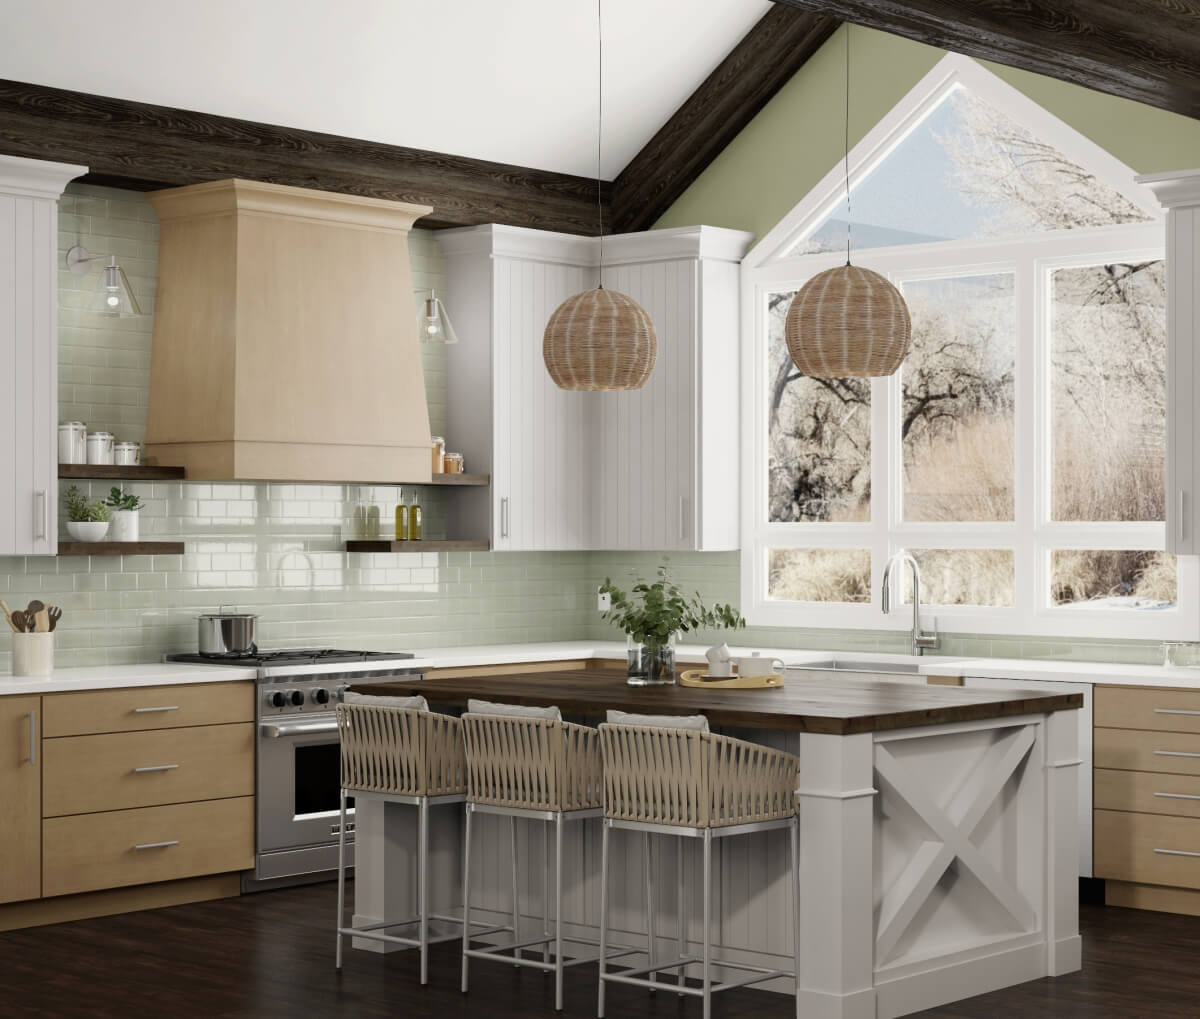 A modern danish style kitchen with scandinavian pendant lights over the shiplap kitchen island with an X Island End Cap.